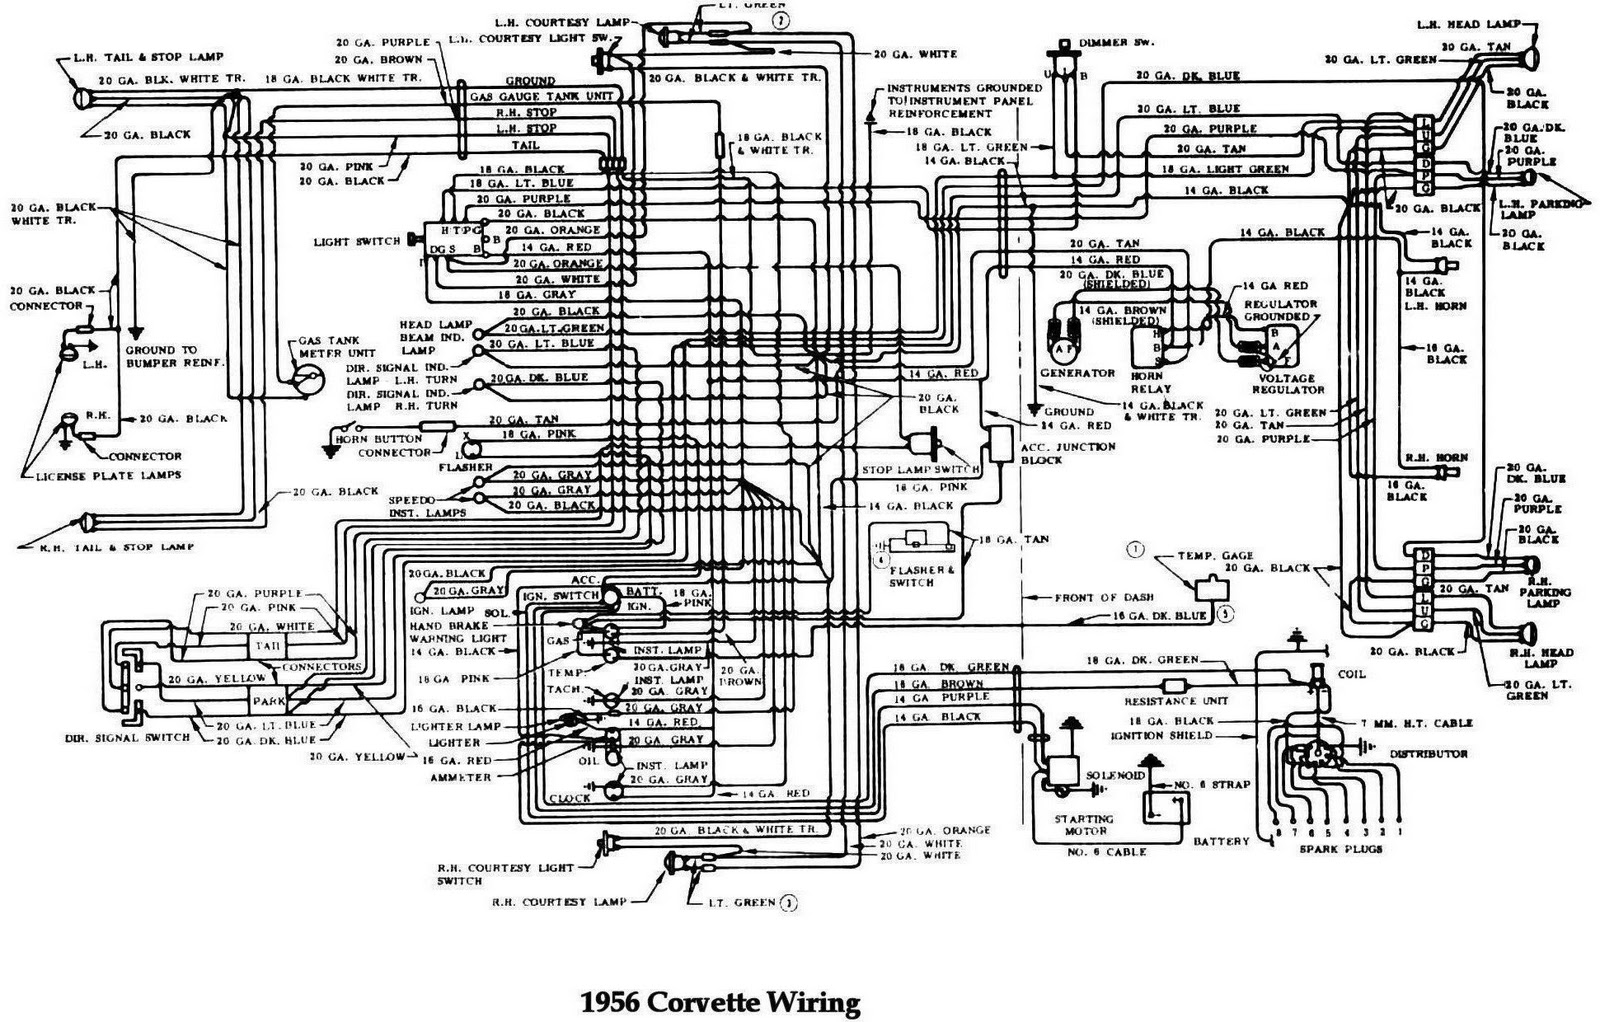 chevy sonic radio wiring diagram 2000 chevy malibu stereo chevy sonic radio wiring  diagram chevy sonic